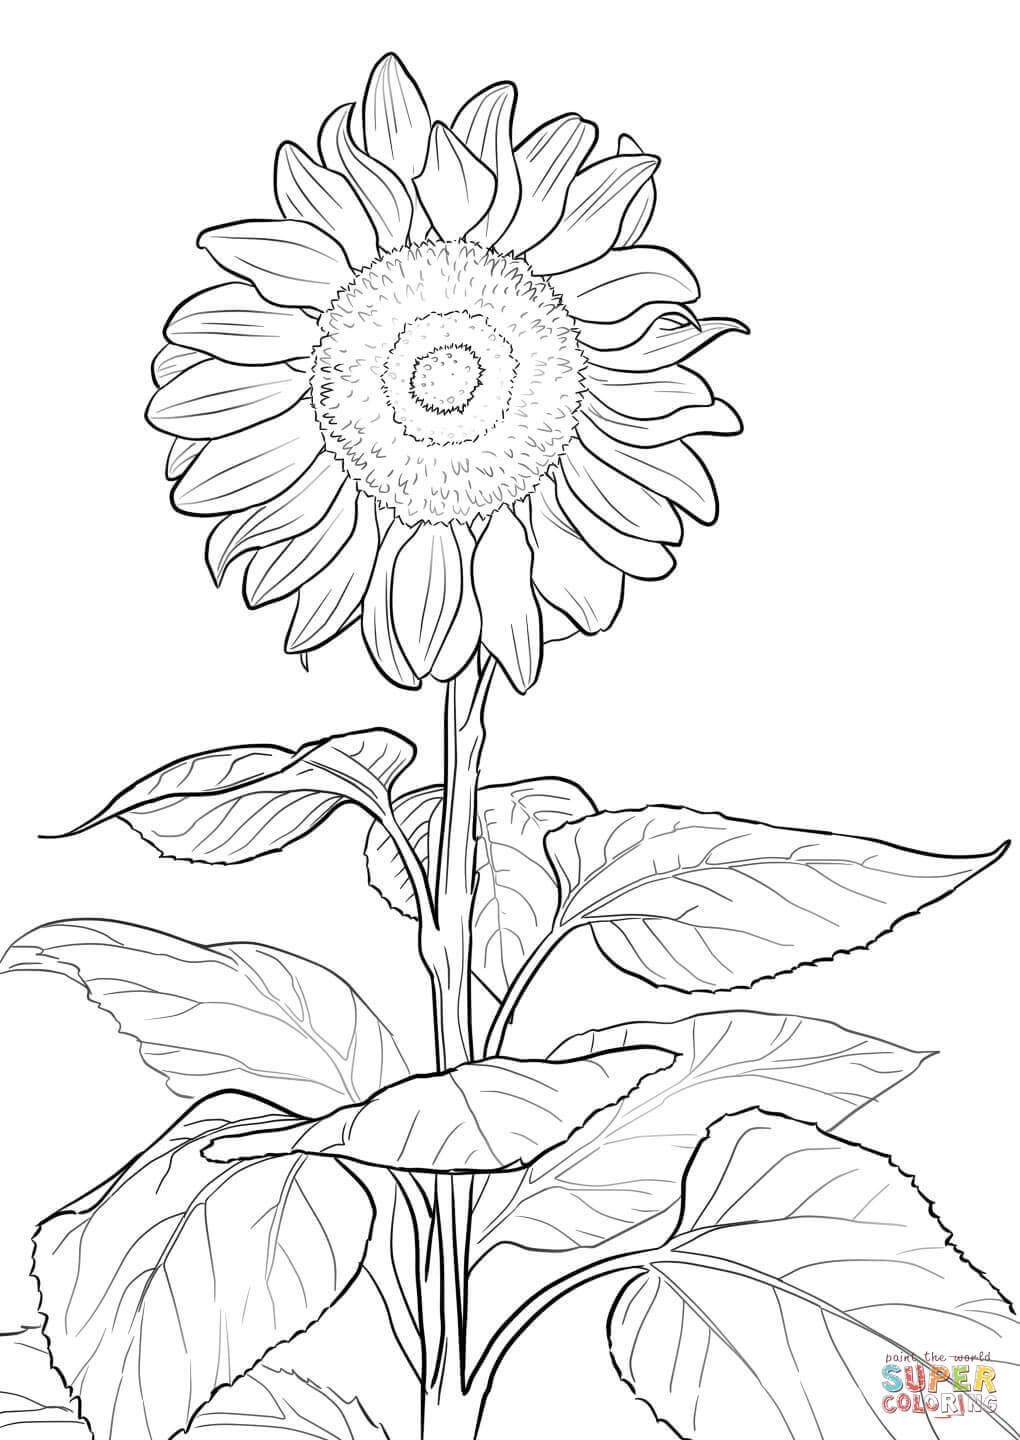 coloring sunflowers printable sunflower coloring sheet coloring sheets for young adults printable sunflowers coloring